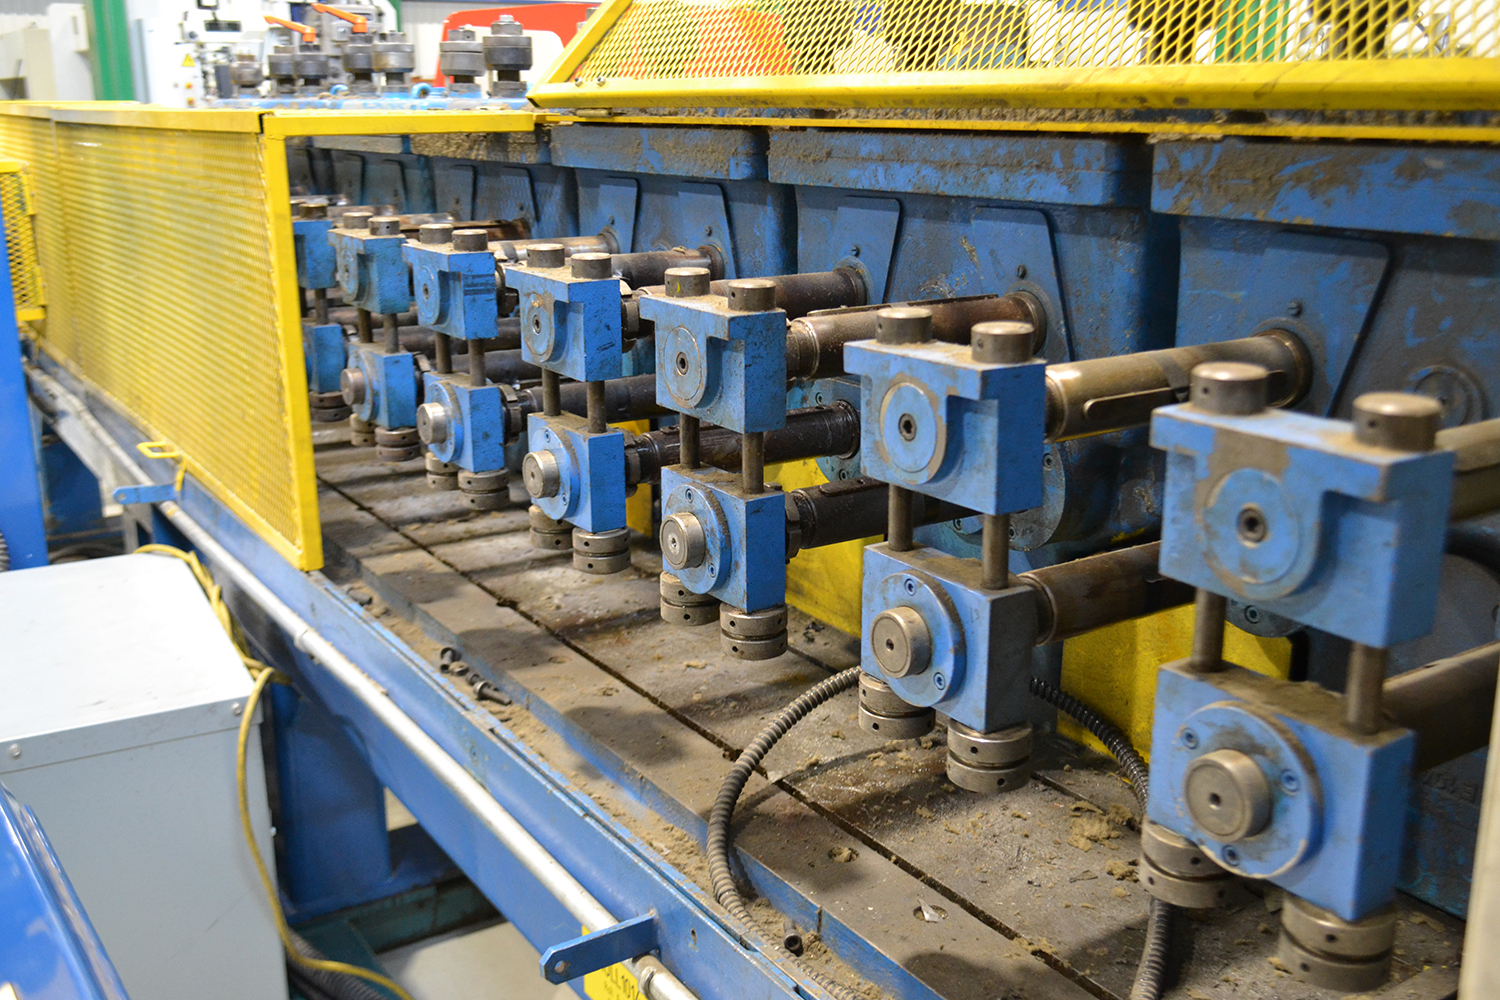 Lot 4 - DREISTERN 14 STATION ROLLFORMER MOD. P1226N, S/N: 93379, W/ 3 ADDITIONAL STATIONS, W/ PUNCH PRESS